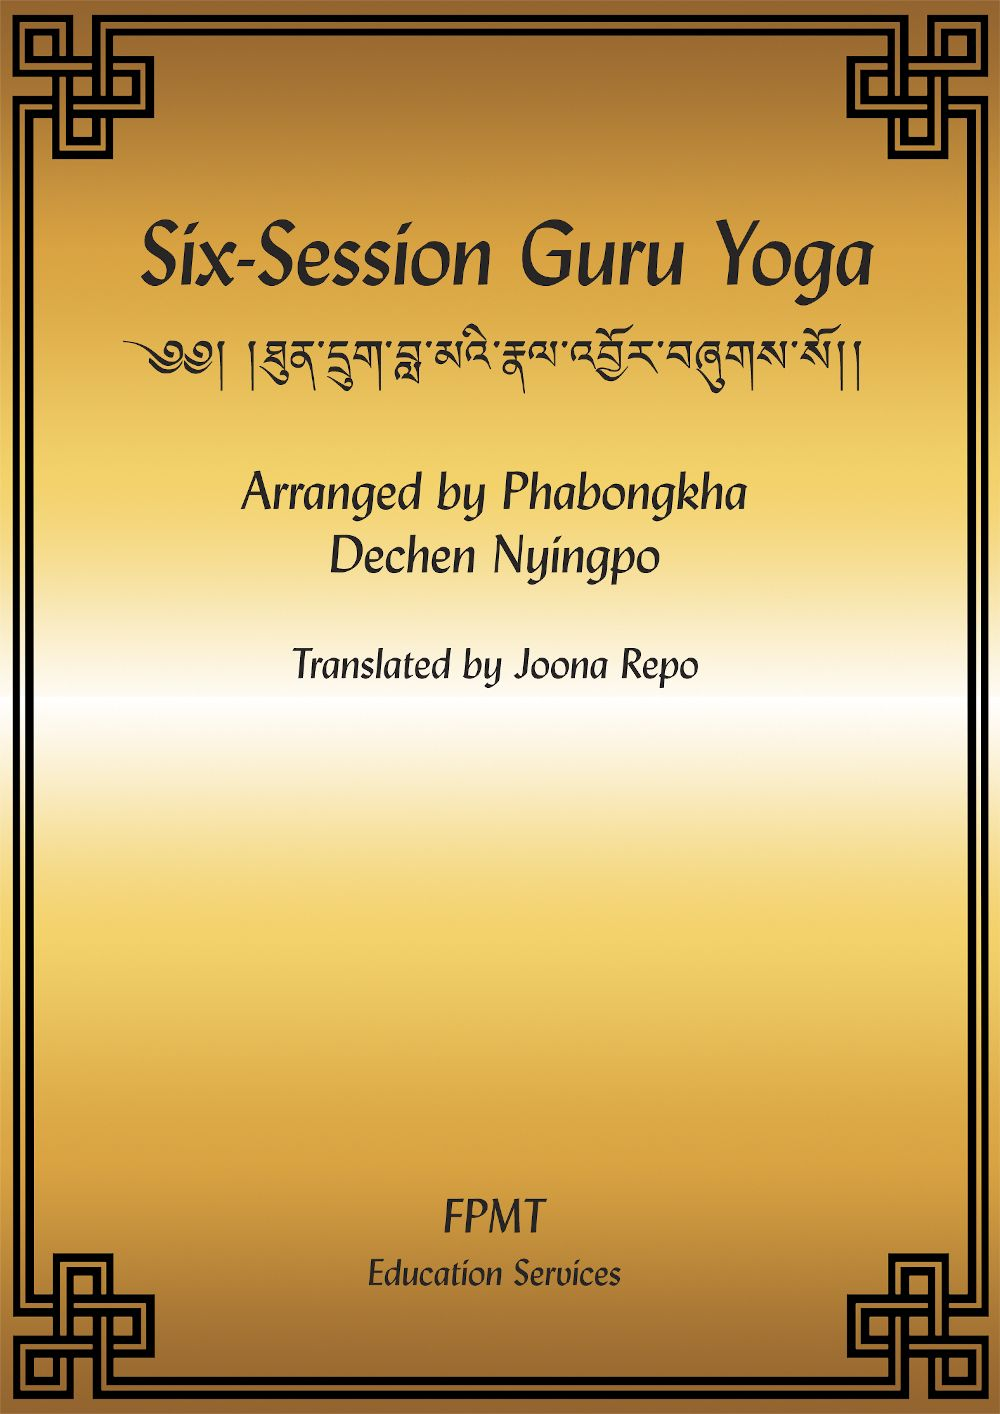 Six-Session Guru Yoga Root Verses and Commentaries